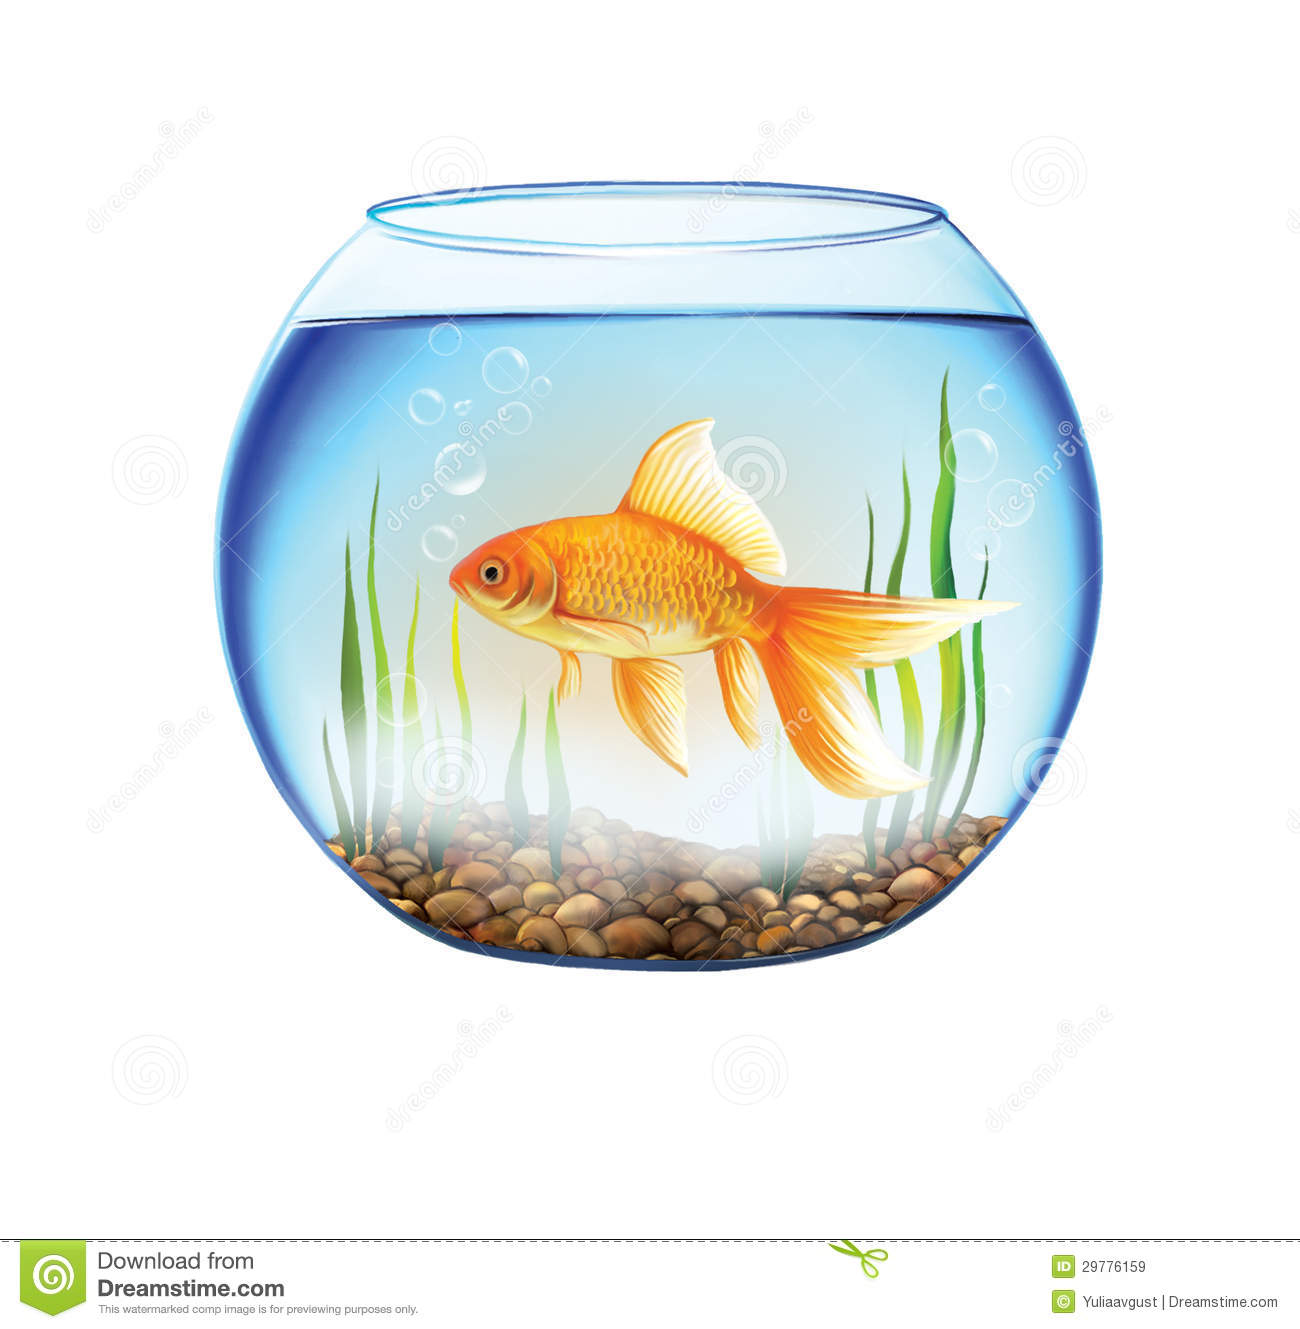 Gold fish in a round aquarium fish bowl stock for Fish in a bowl